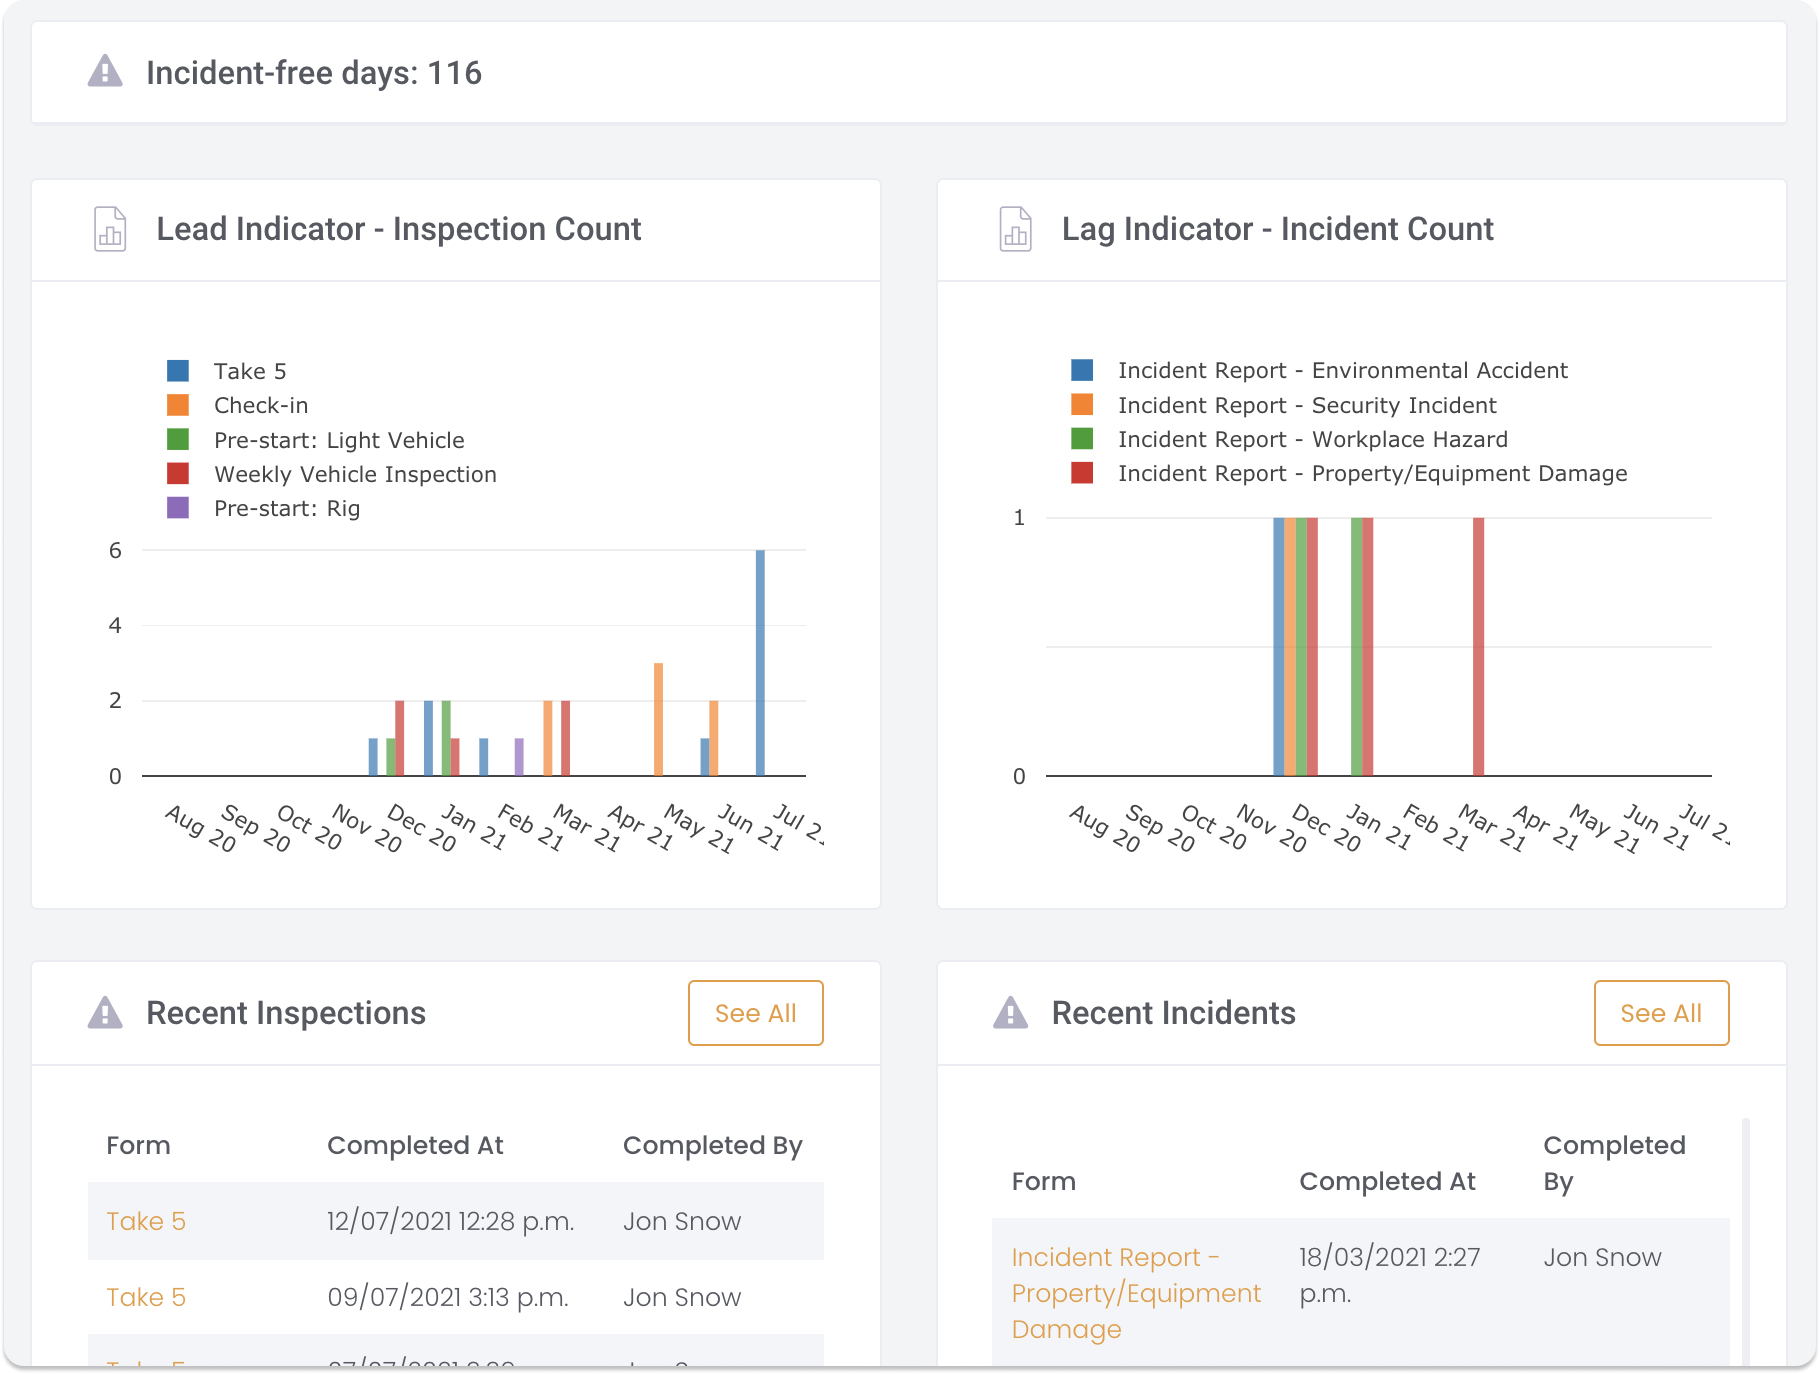 Safety Project Dashboard showing lead and lag indicators for incidents and inspections